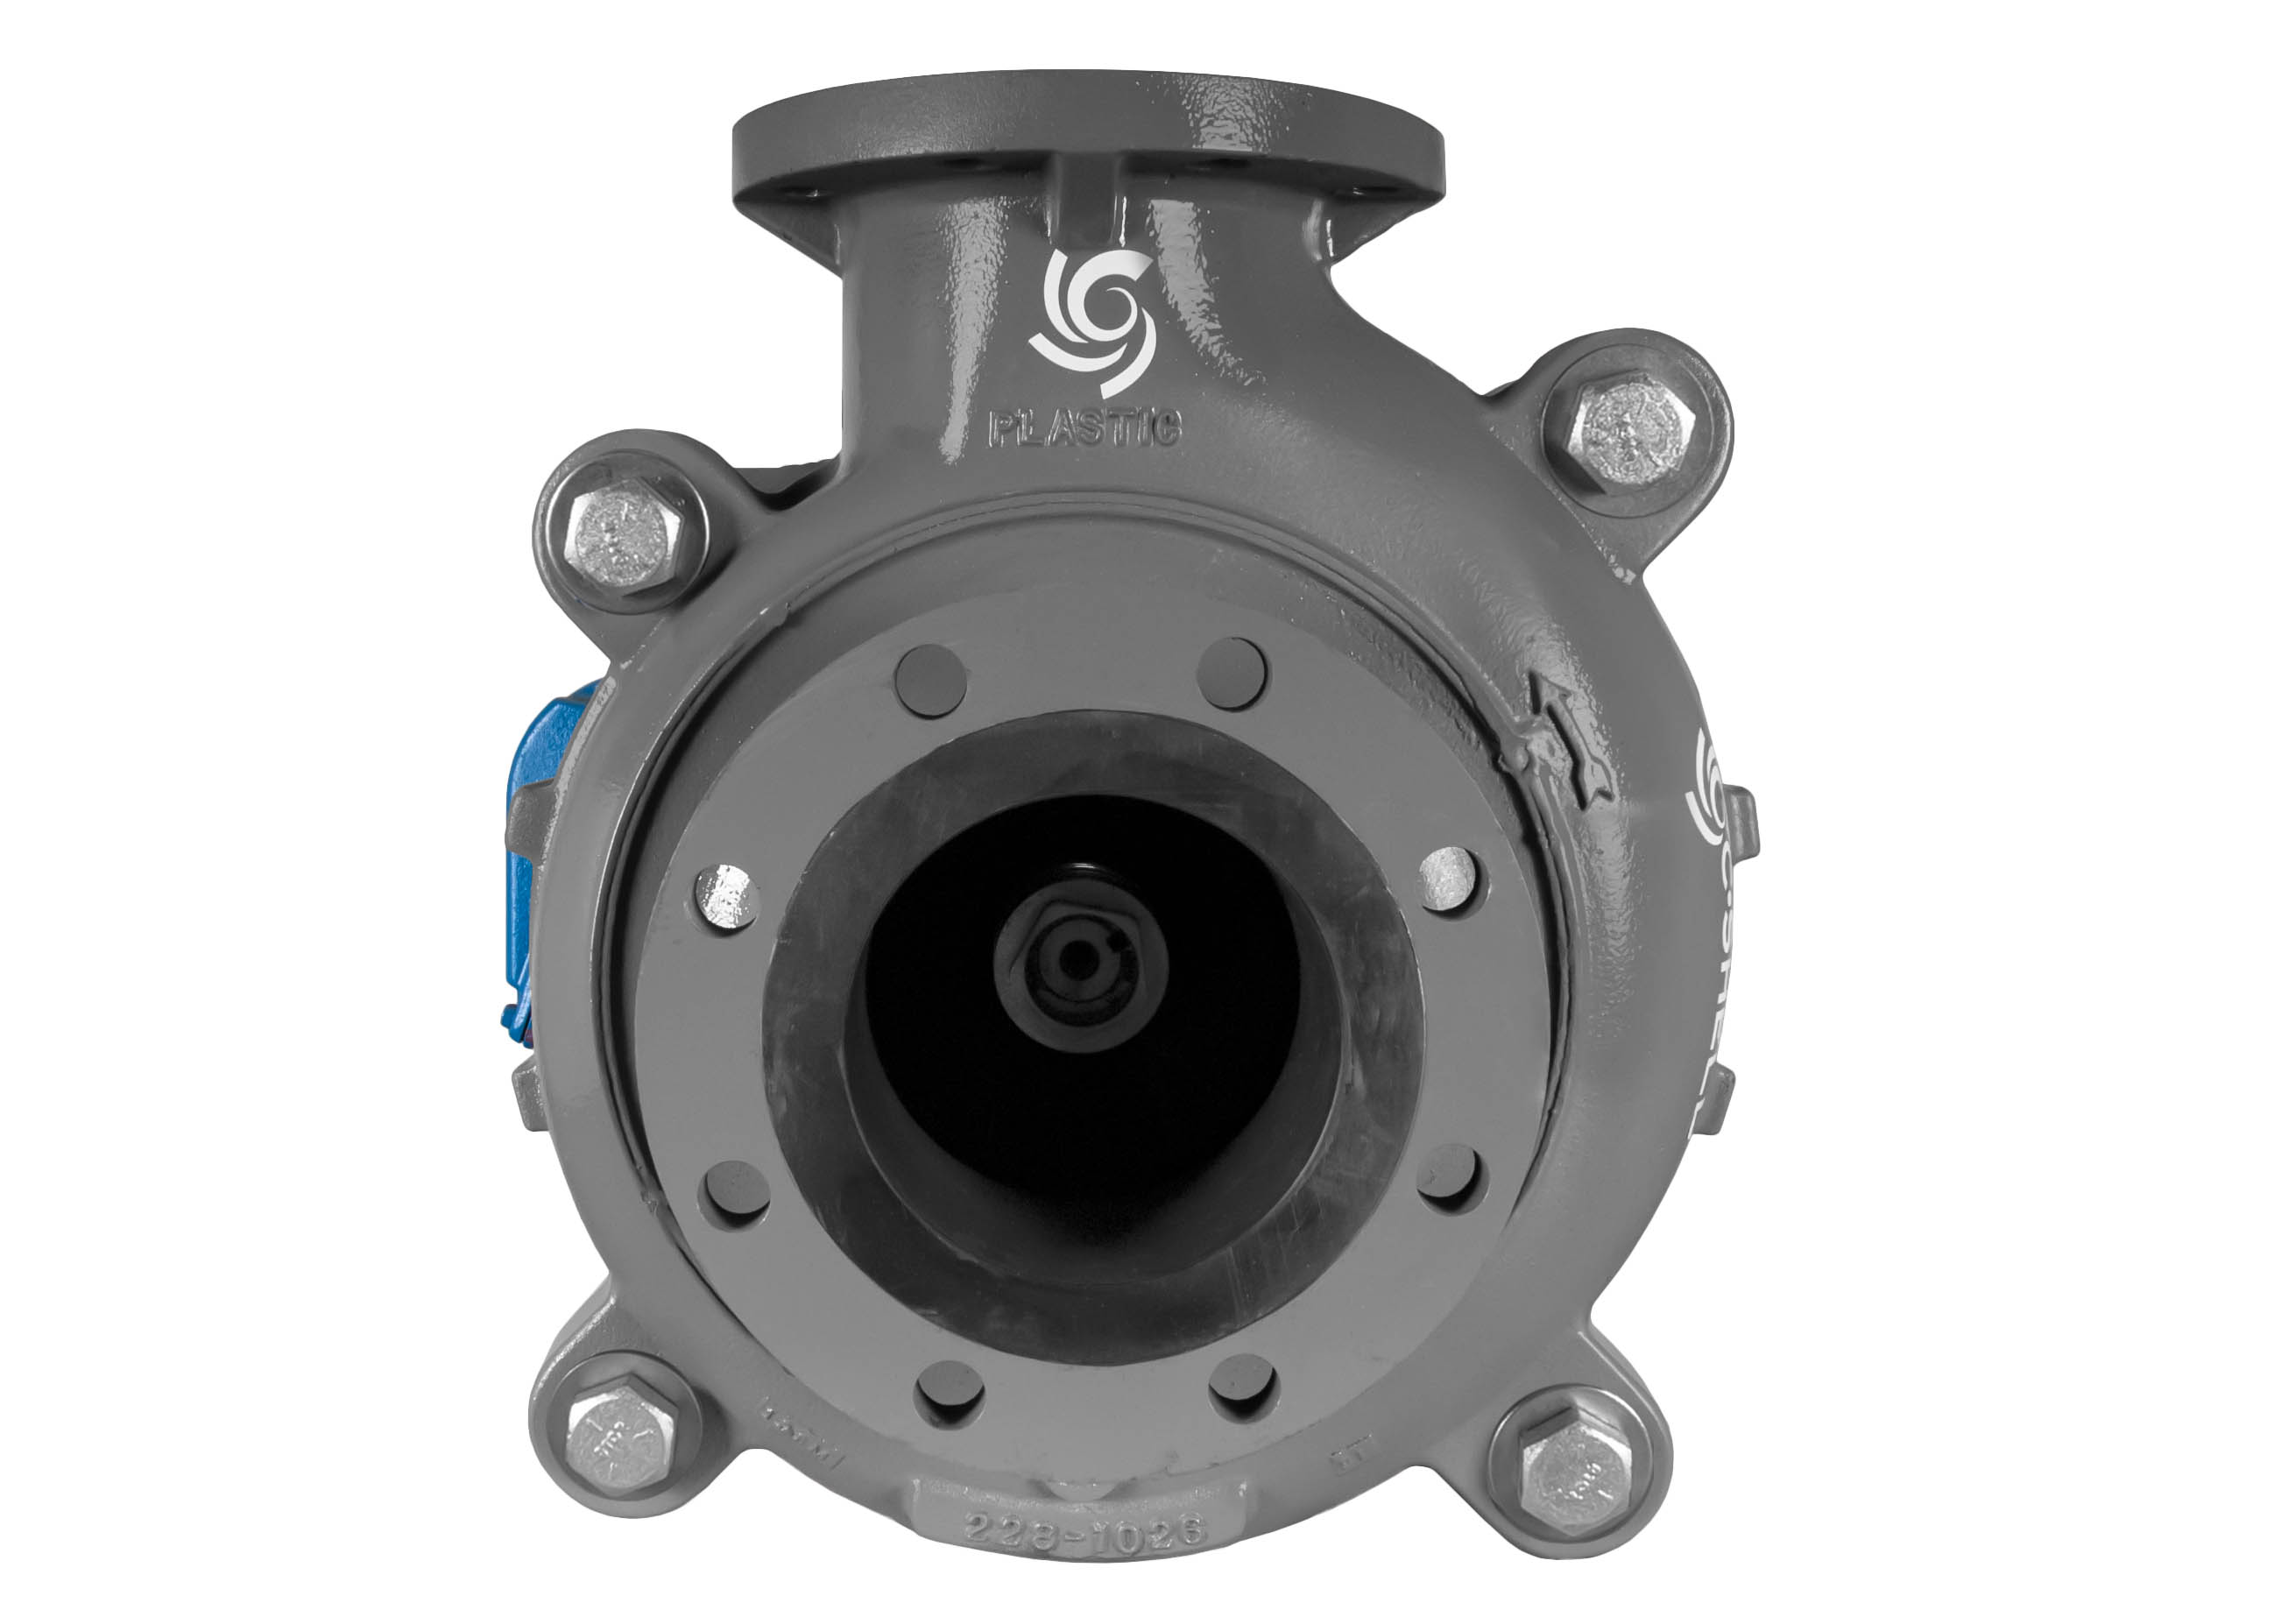 C-Shell 6x5-11 Pump with blue WEG Motor front view